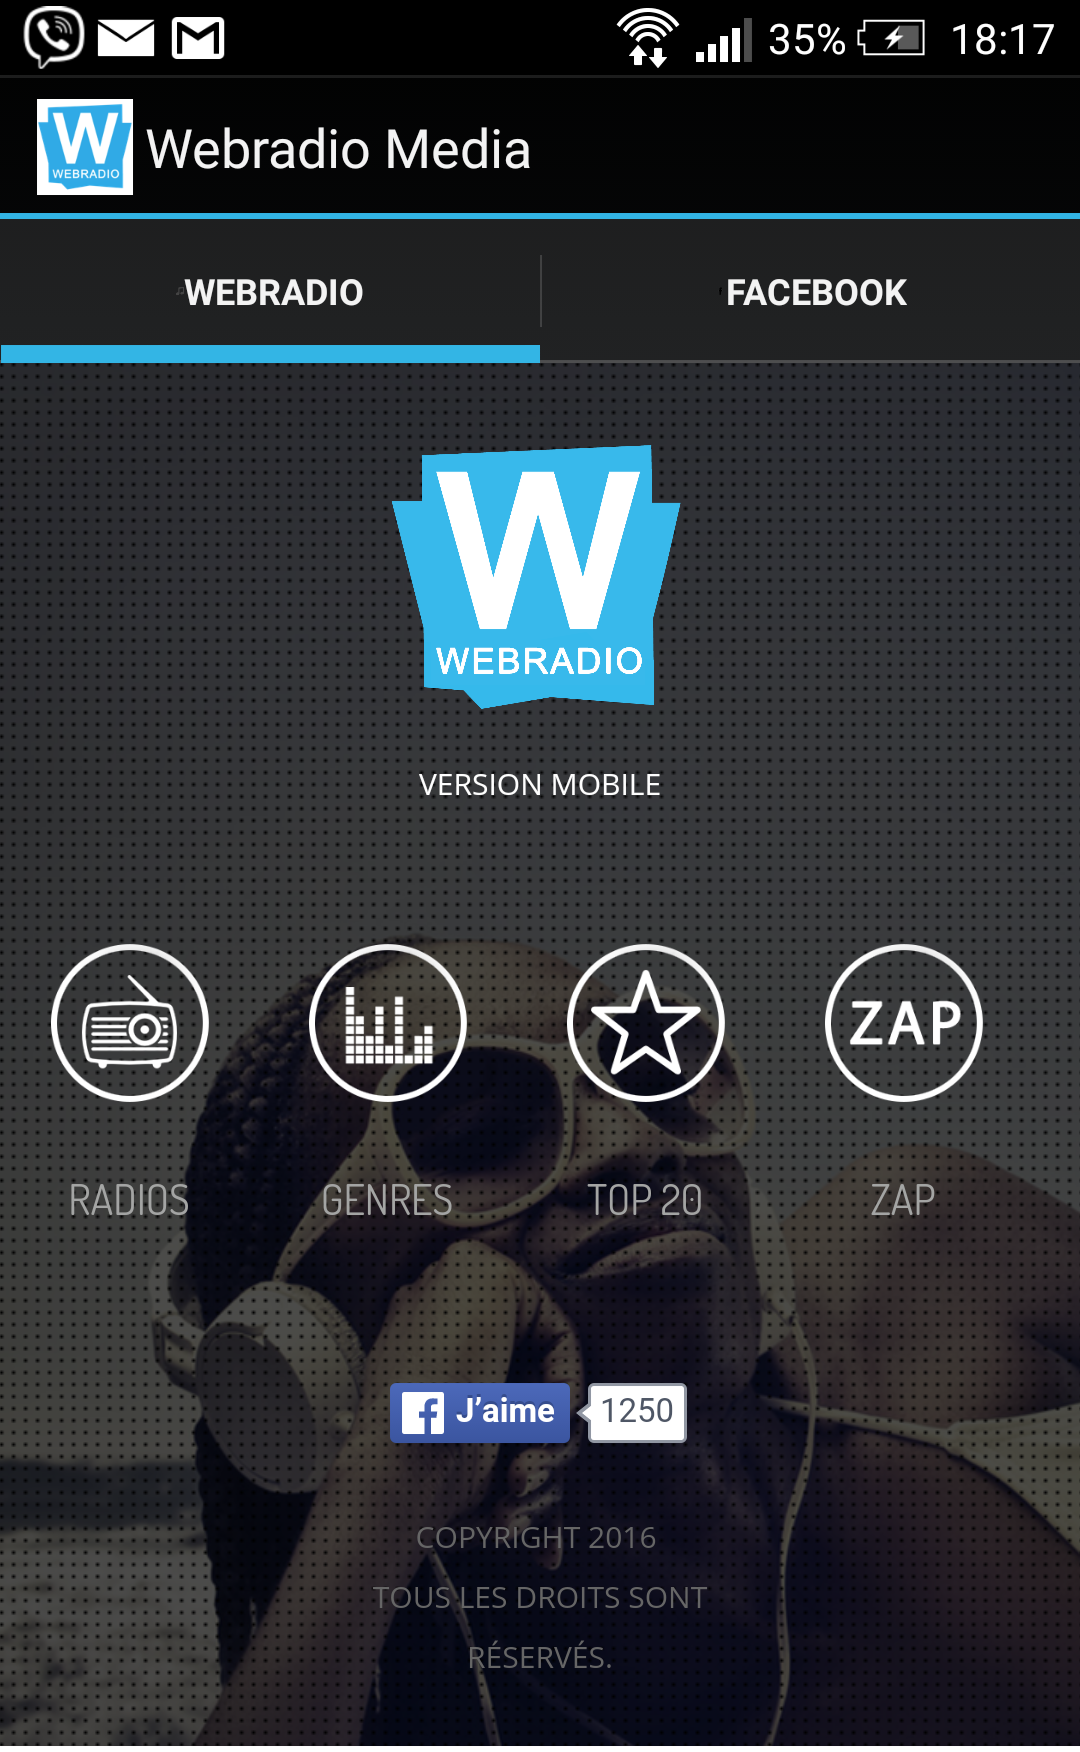 Ton application Webradio Media gratuite